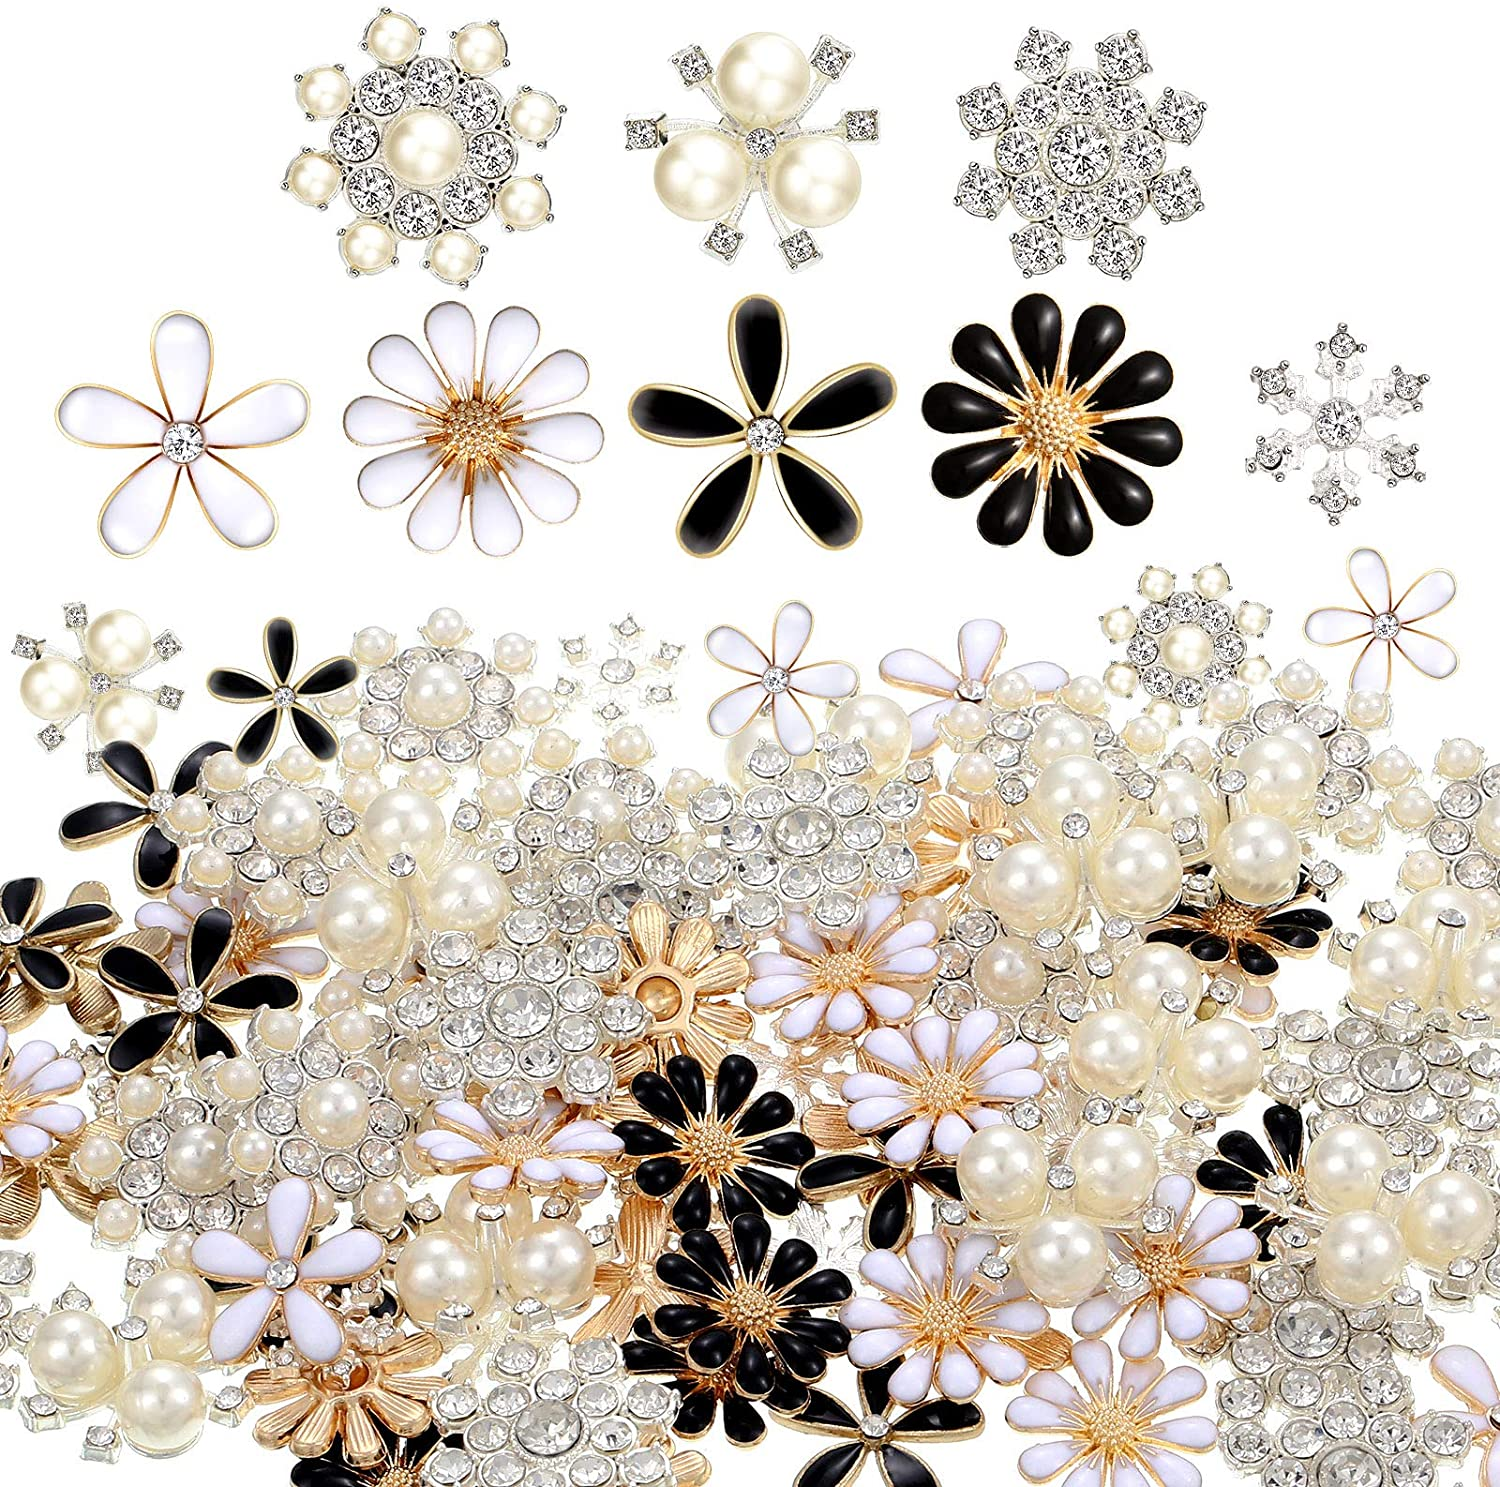 80 Pieces Rhinestone Buttons Embellishments Buttons Faux Pearl Buttons Flat Back Flower Rhinestone Buttons for Jewelry Making Wedding Party Home Decoration DIY Craft Hair Accessory